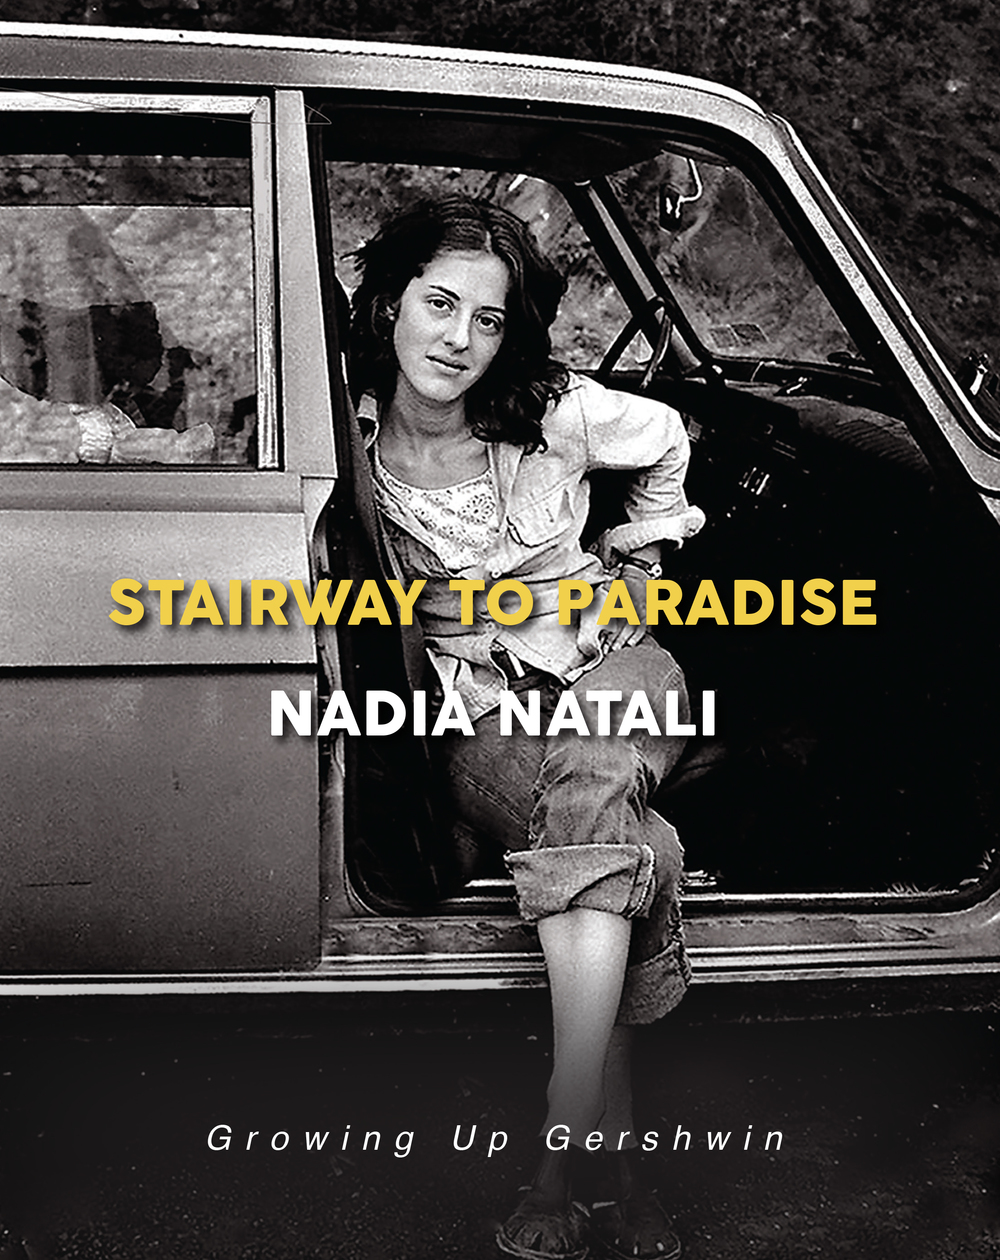 Stairway to Paradise Nadia Natali Front Cover RGB.jpg